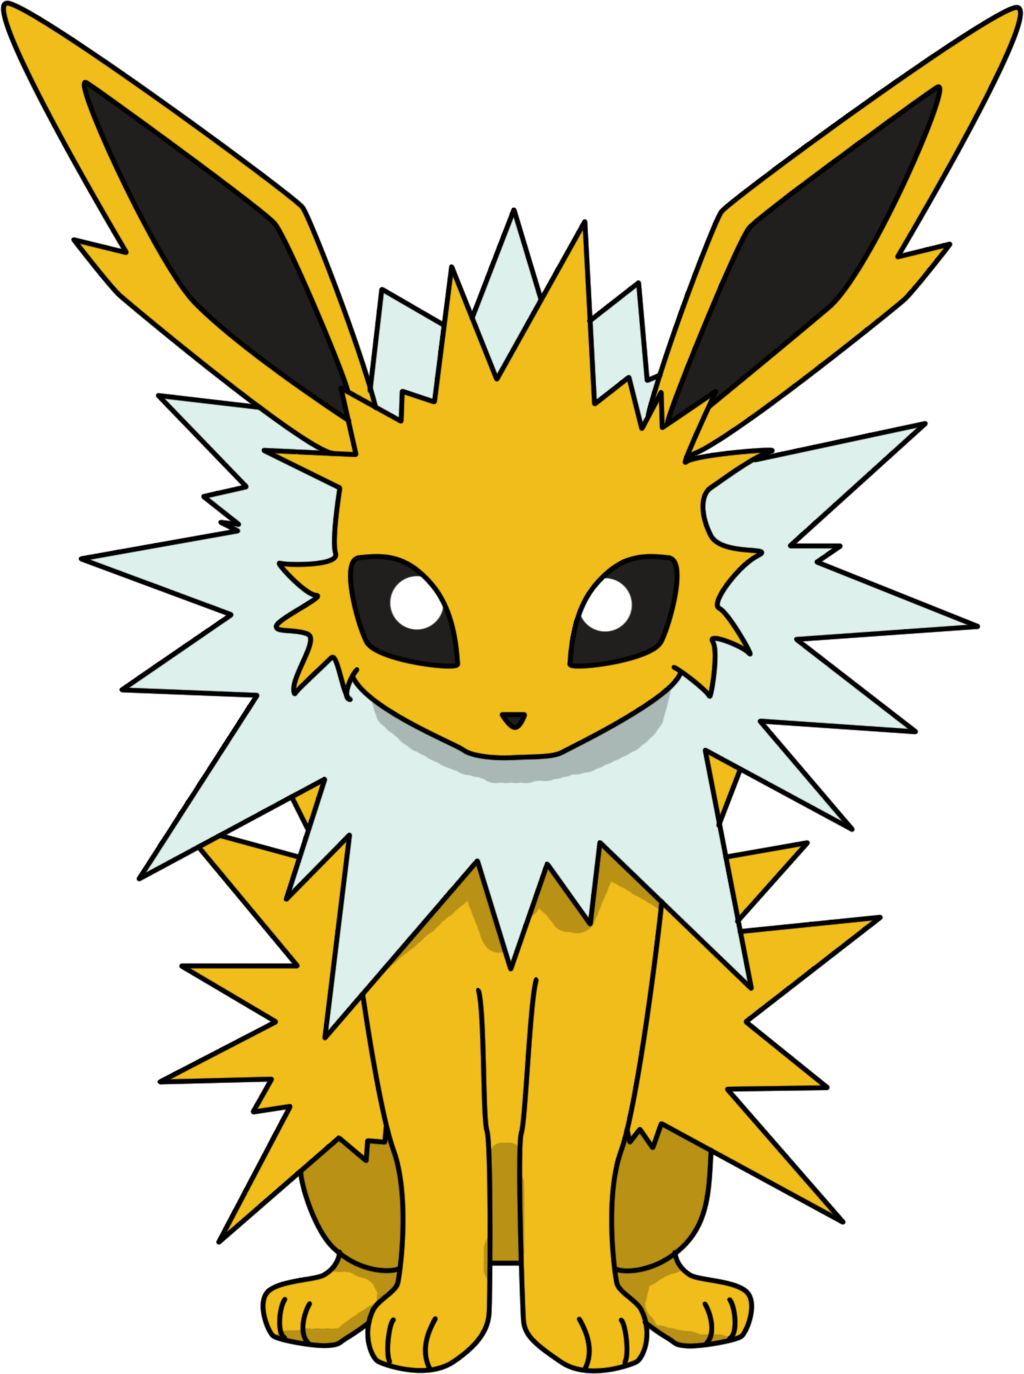 Jolteon Sitting Png Cute Pokemon Wallpaper Pokemon Pokemon Eeveelutions